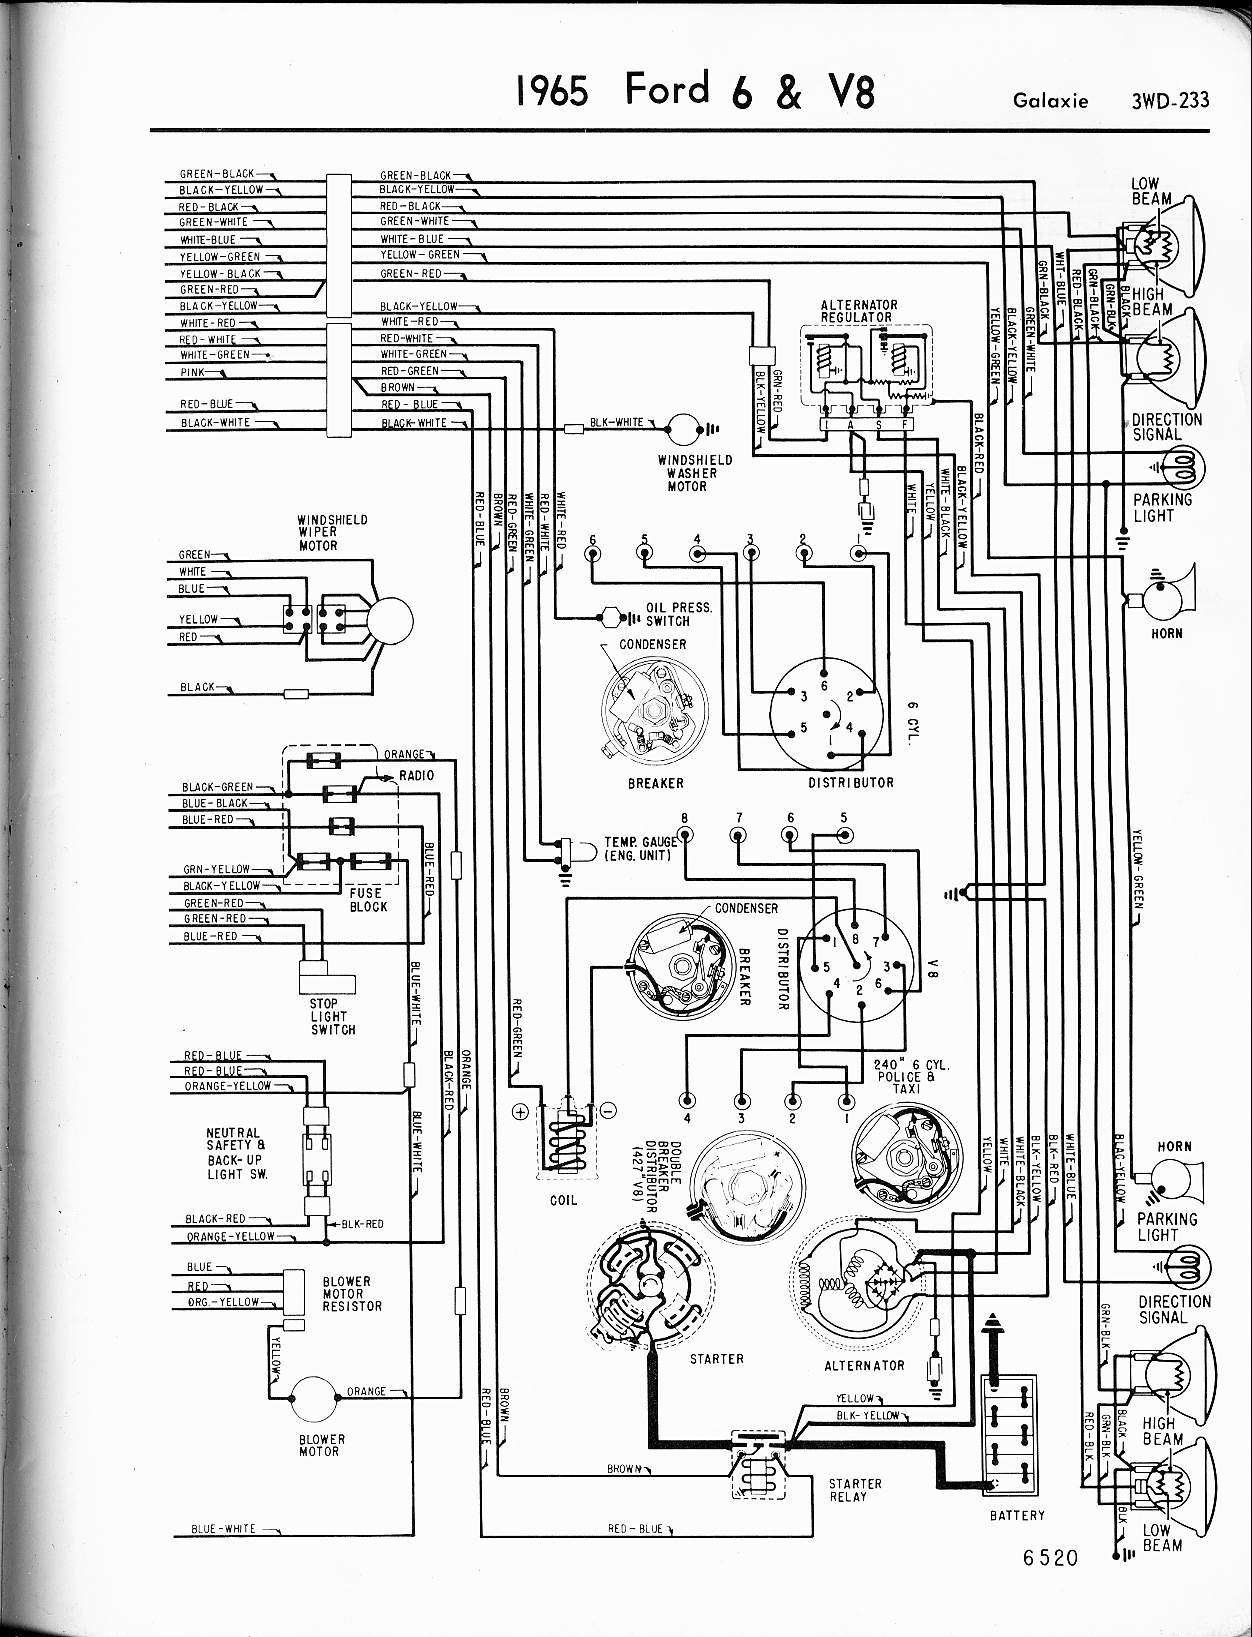 Wiring Diagram Ford Libraries Vr V8 Auto Think Todaysford Diagrams 4630 Electrical